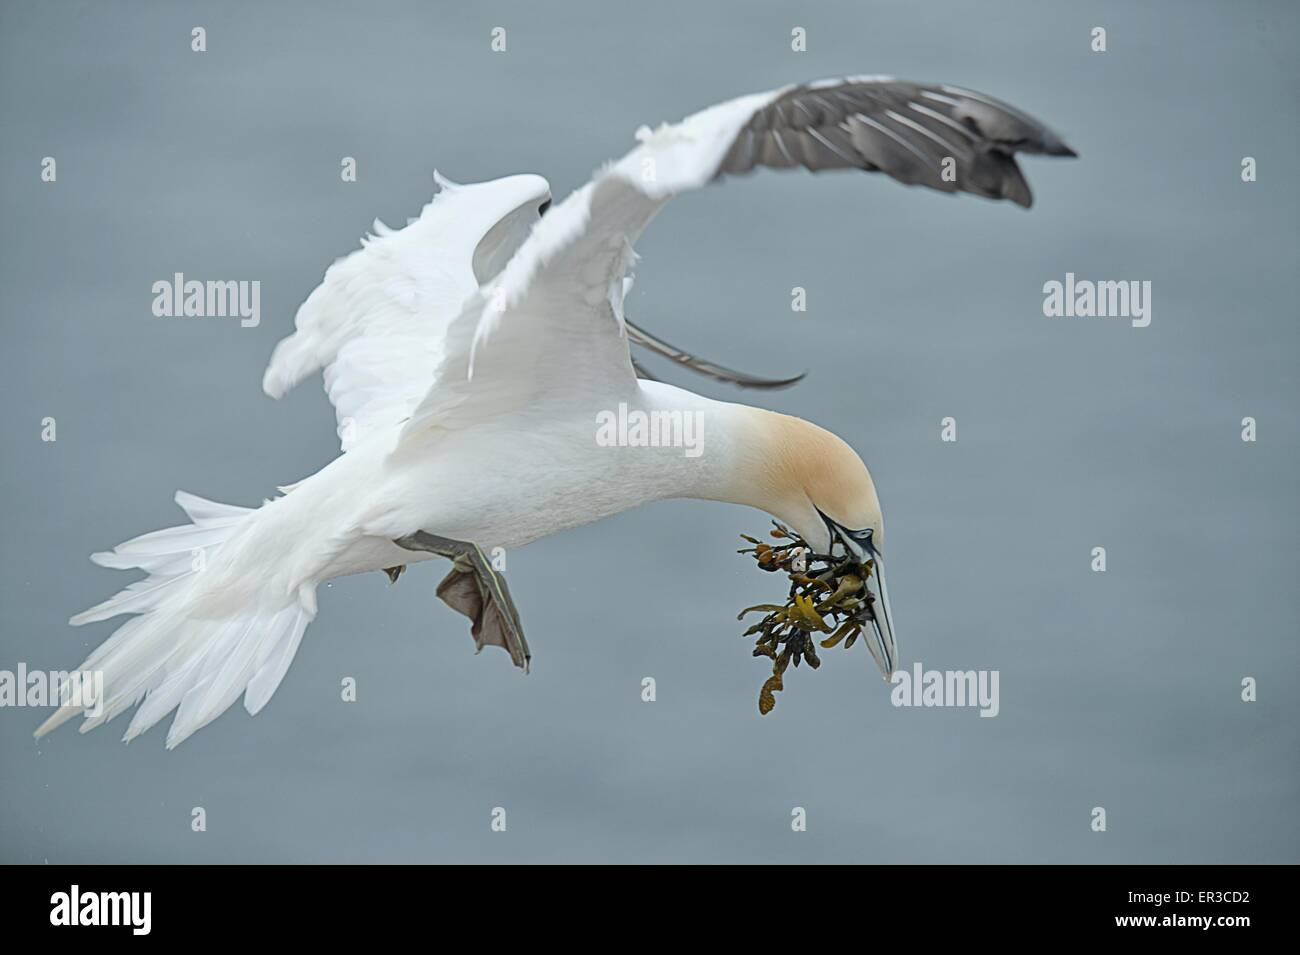 Gannet bird mid air with nesting material, Helgoland, Germany - Stock Image